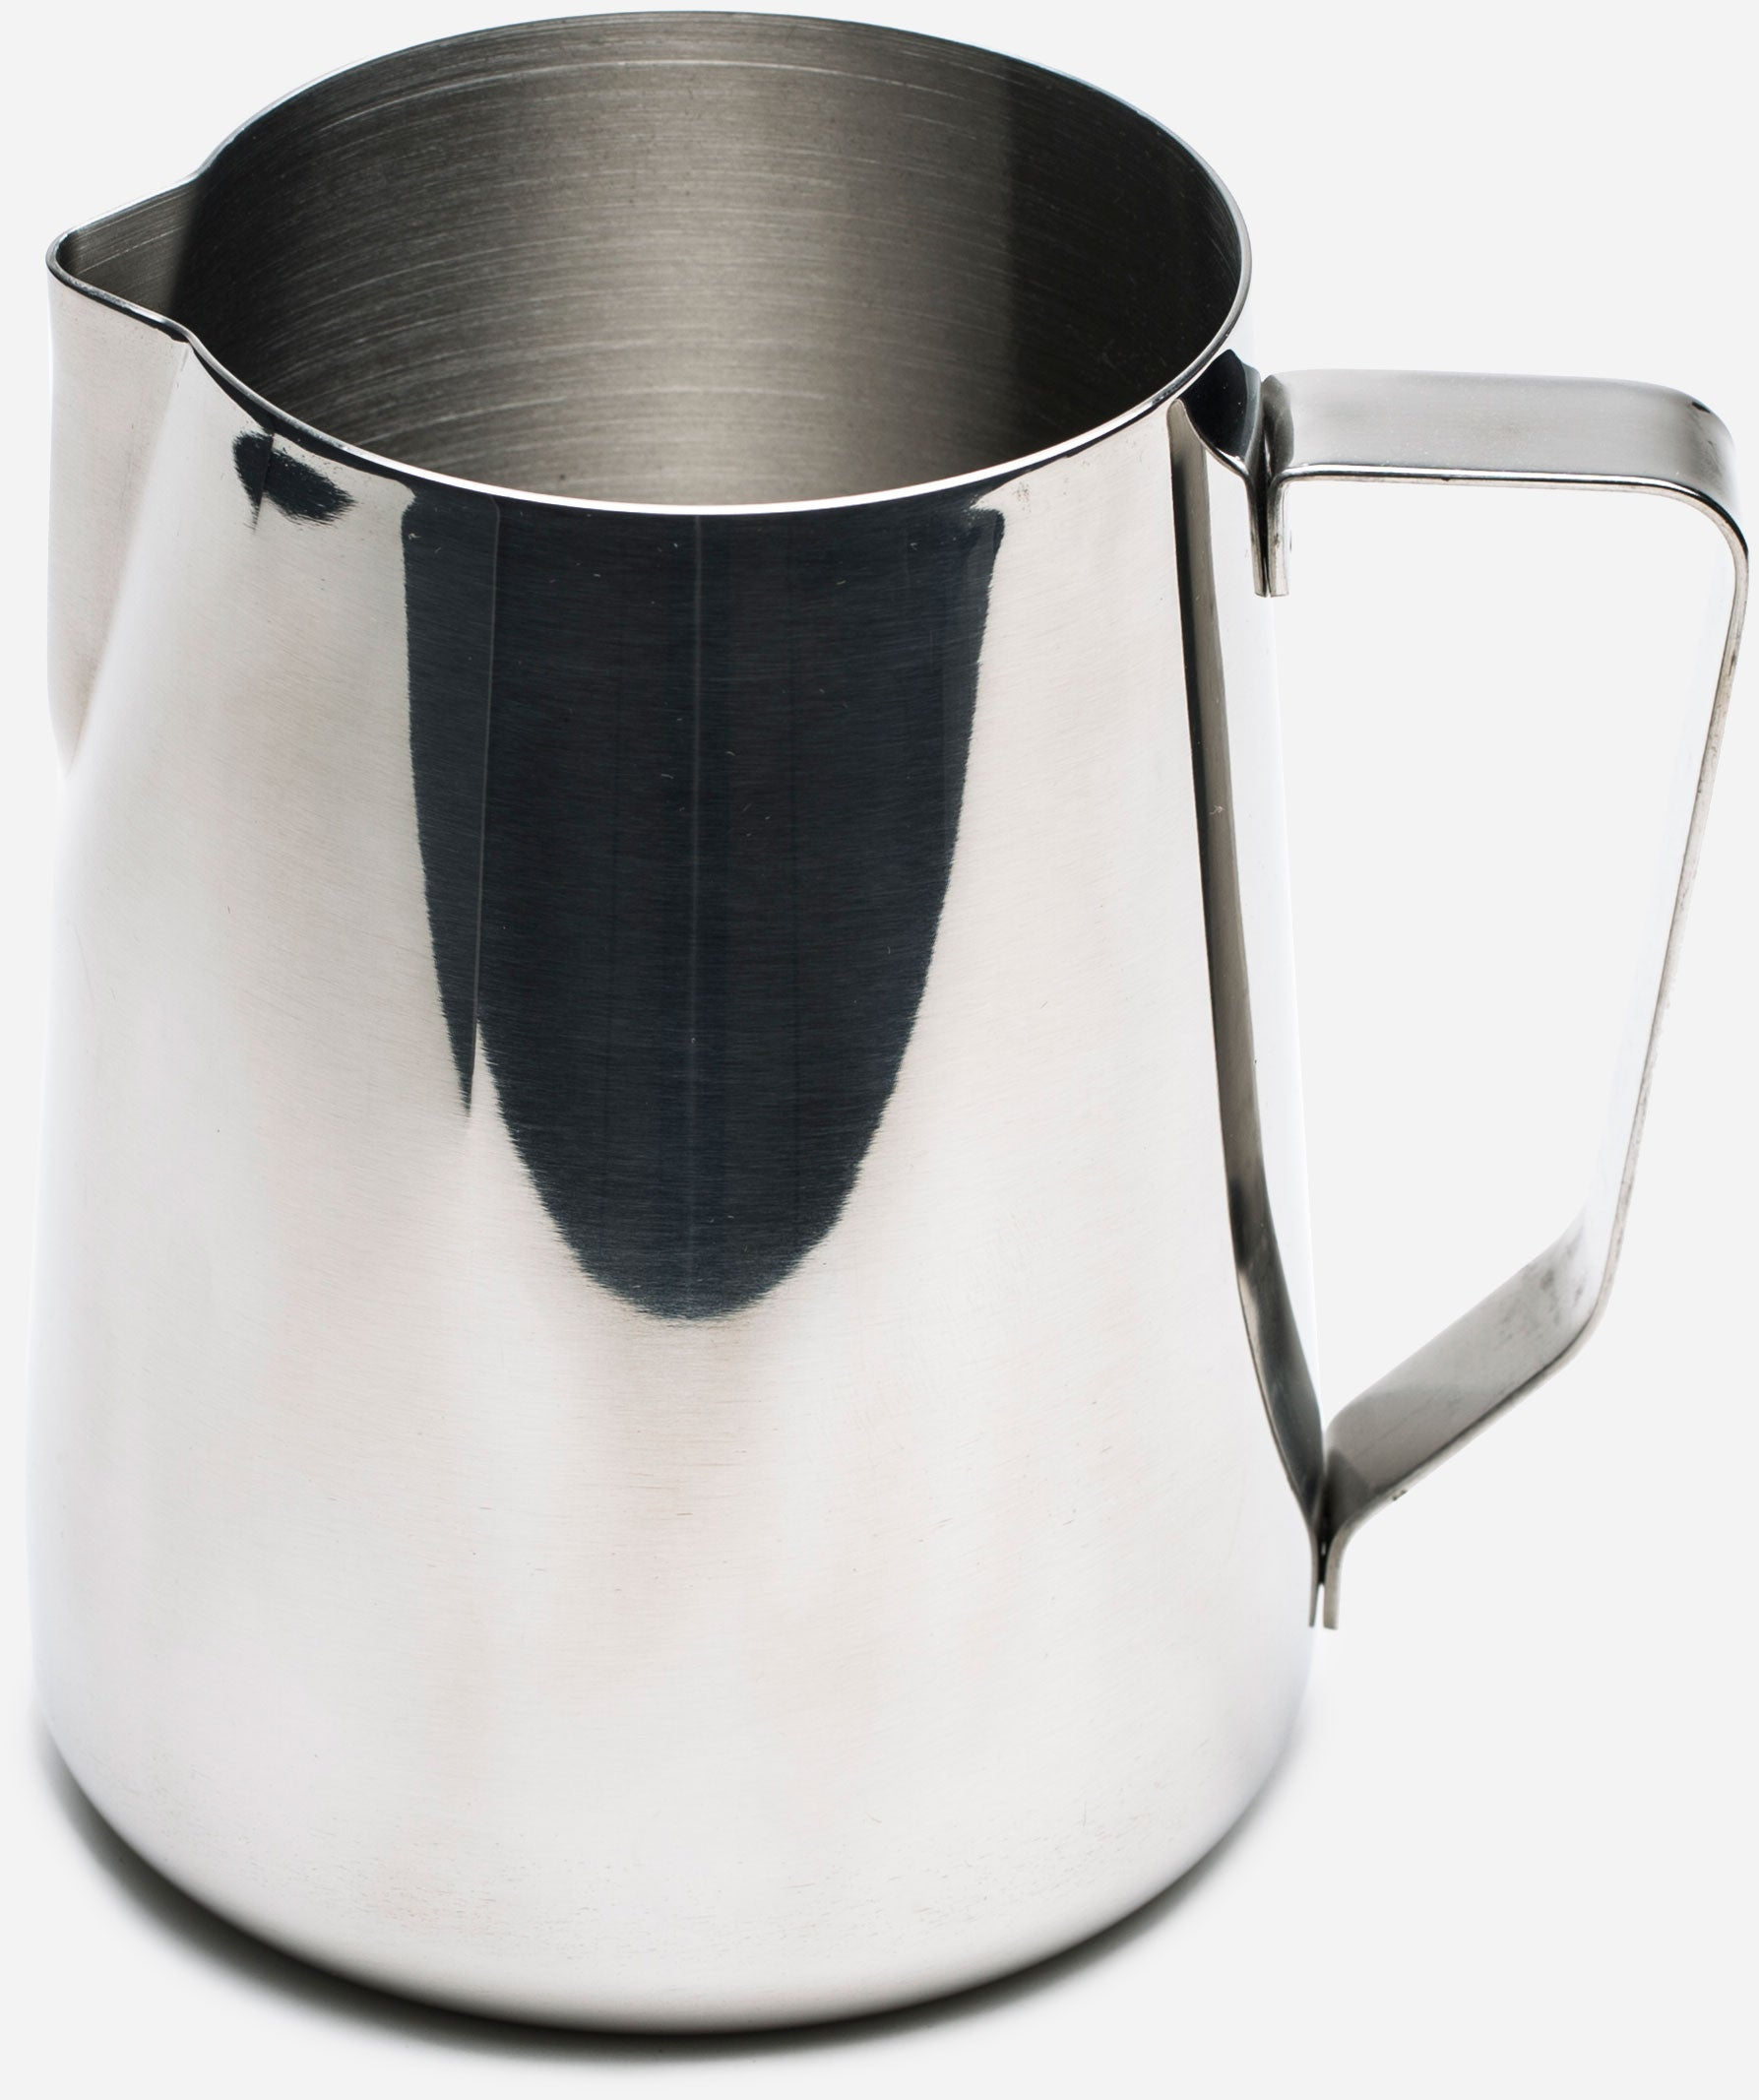 RattleWare Steam Pitcher - 12 oz- Latte art